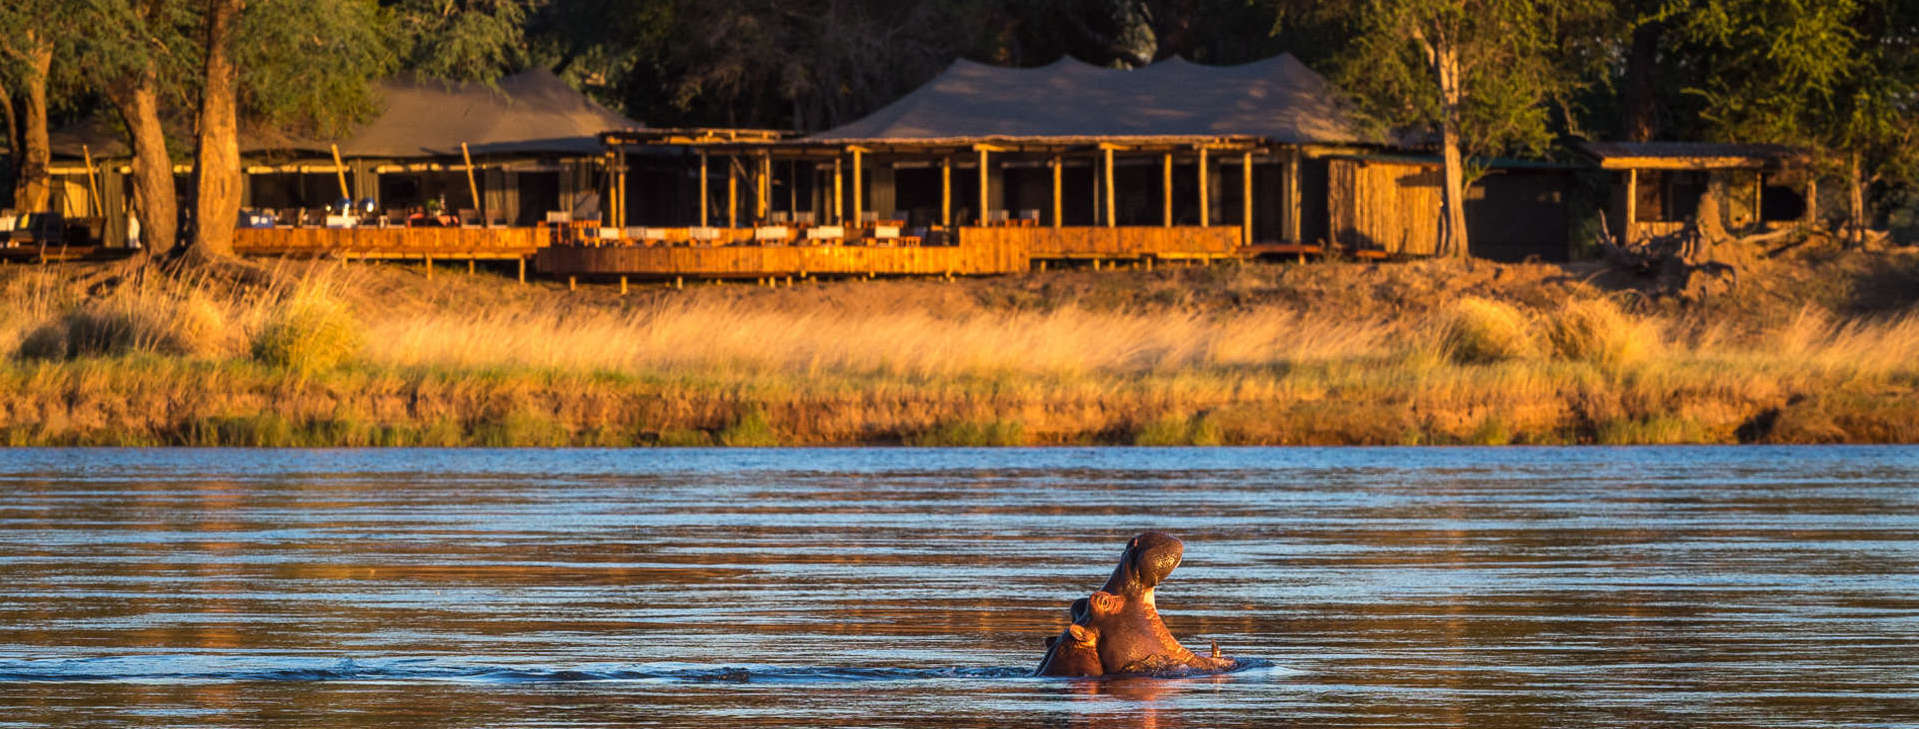 ruckomechi-camp-hippo-in-zambezi